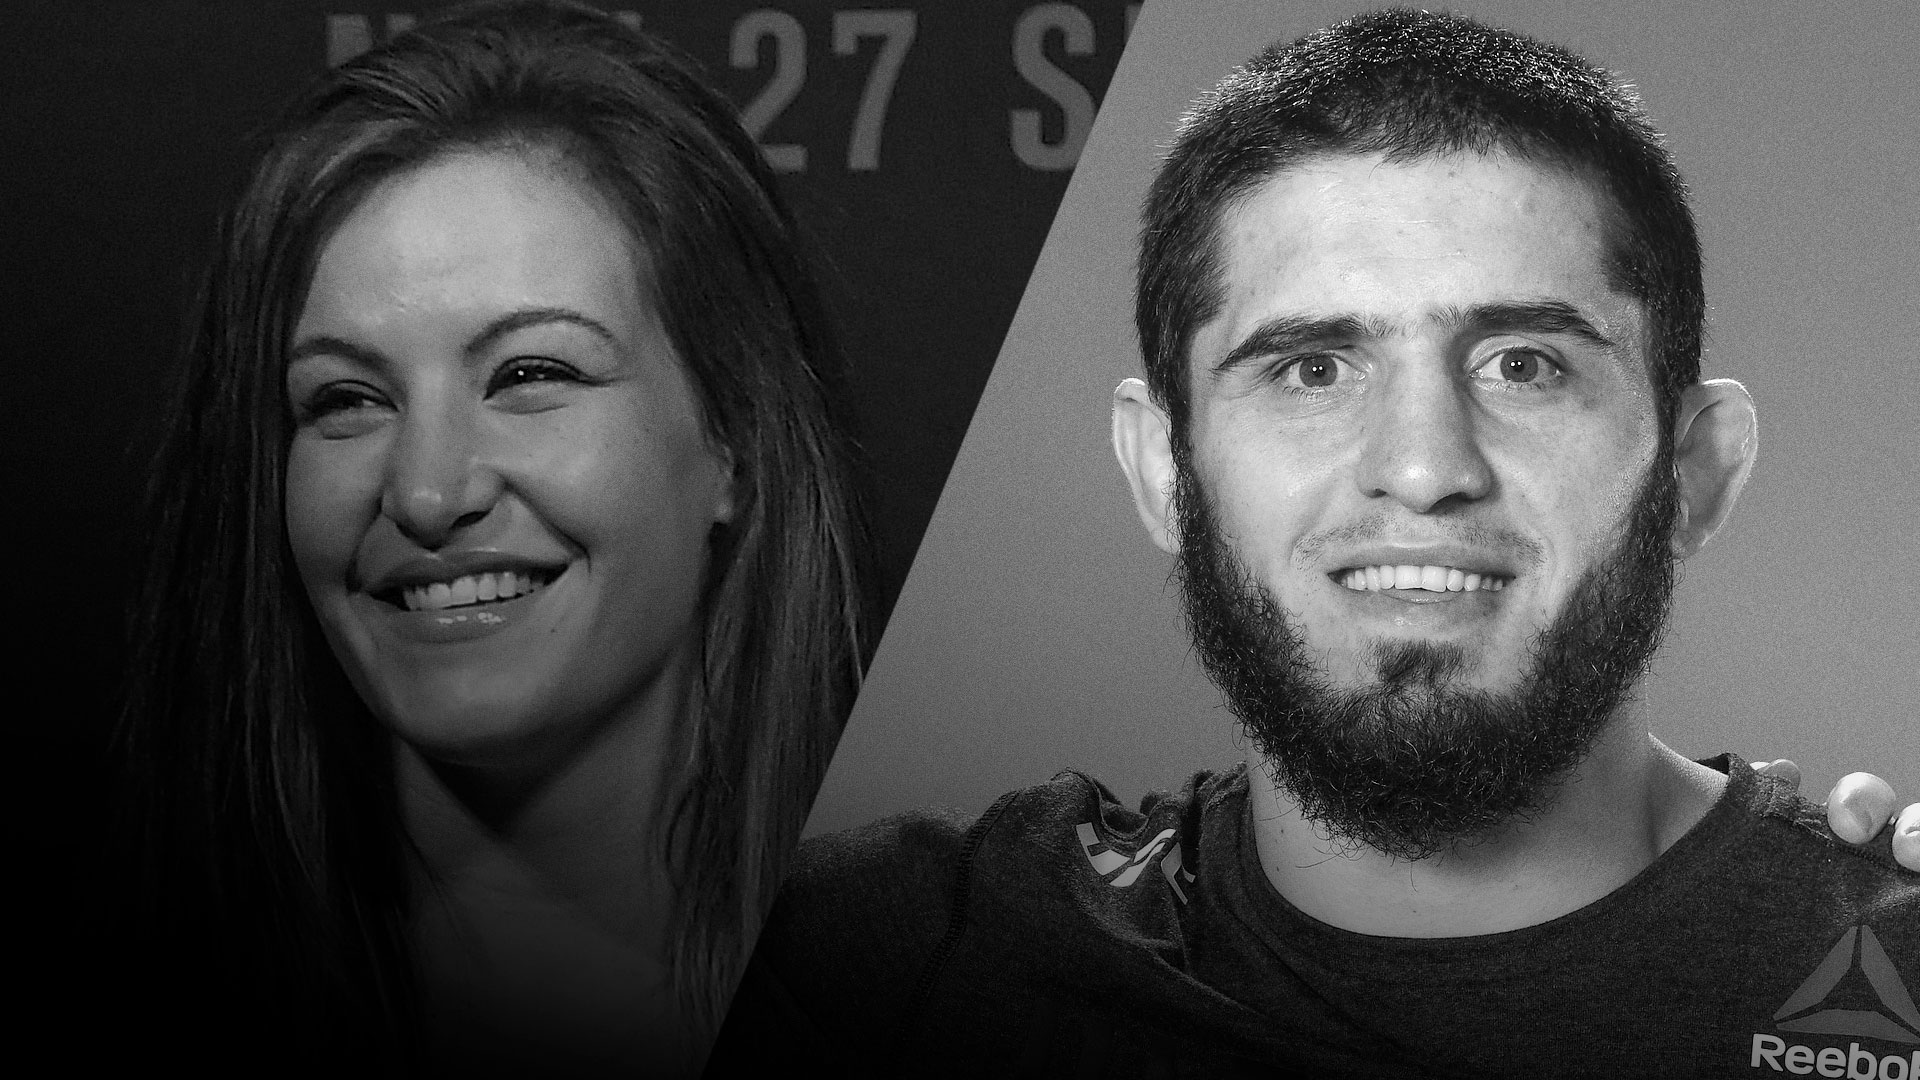 Listen To The Latest Episode Of UFC Unfiltered Featuring Miesha Tate and Islam Makhachev